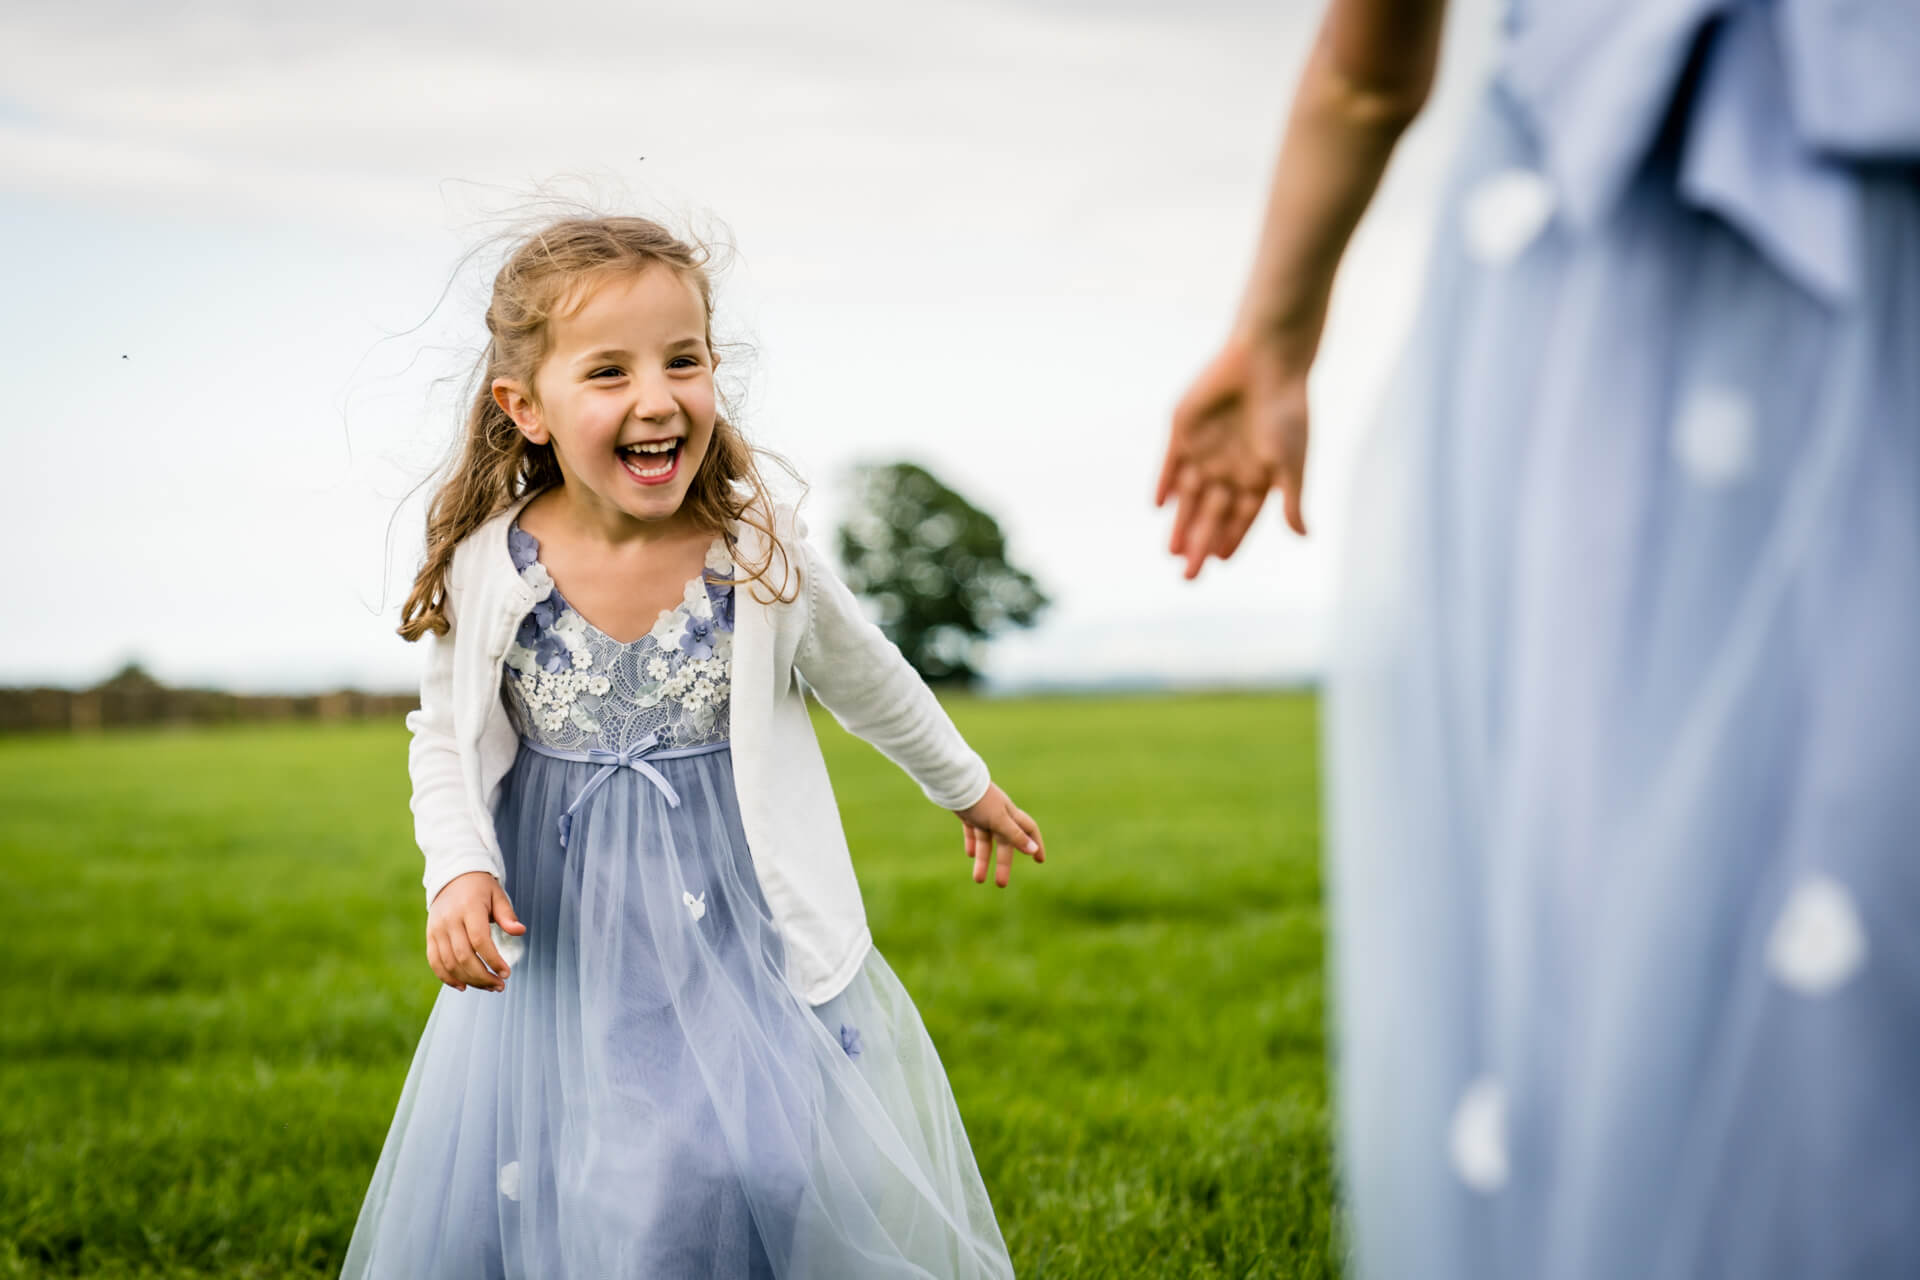 flower girl chasing after her sister in a field